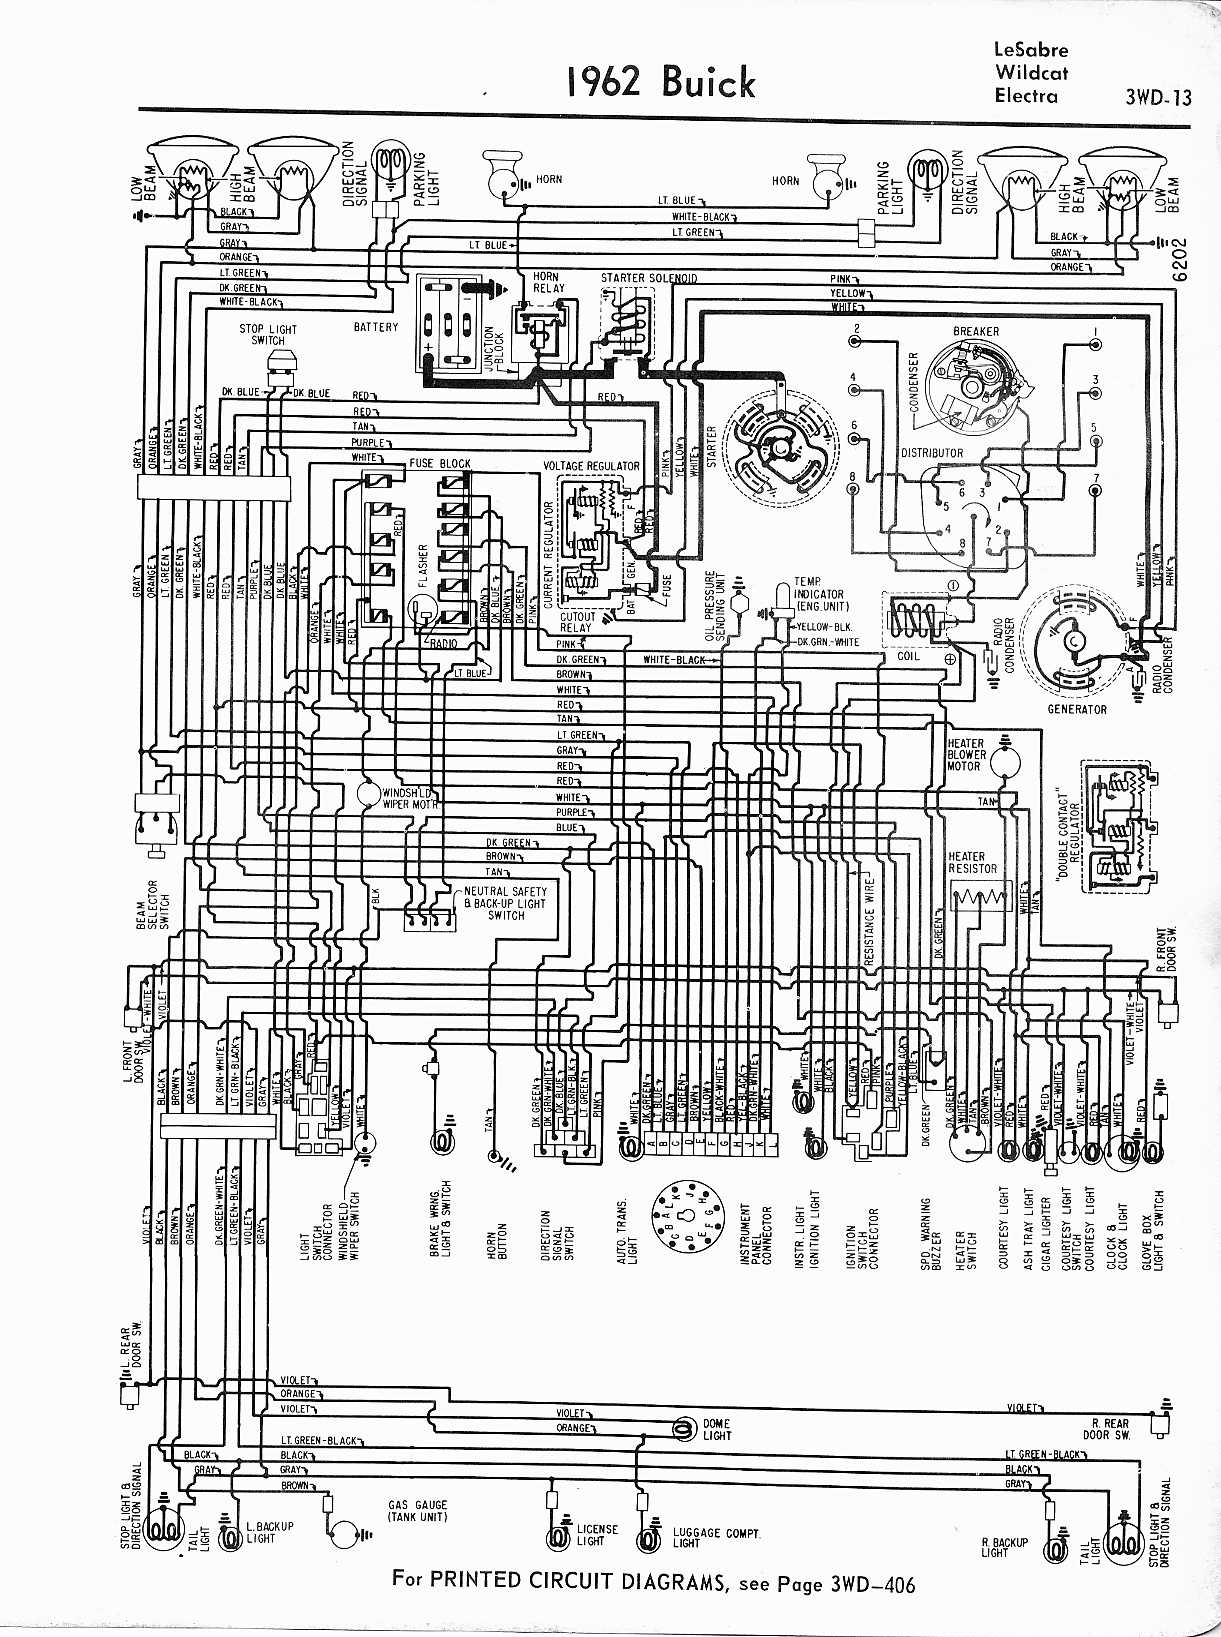 87 Buick Gn Wiring Diagram Schematic Library 1986 3800 Engine 1966 Riviera Simple Grand National Charging System Diagrams 1957